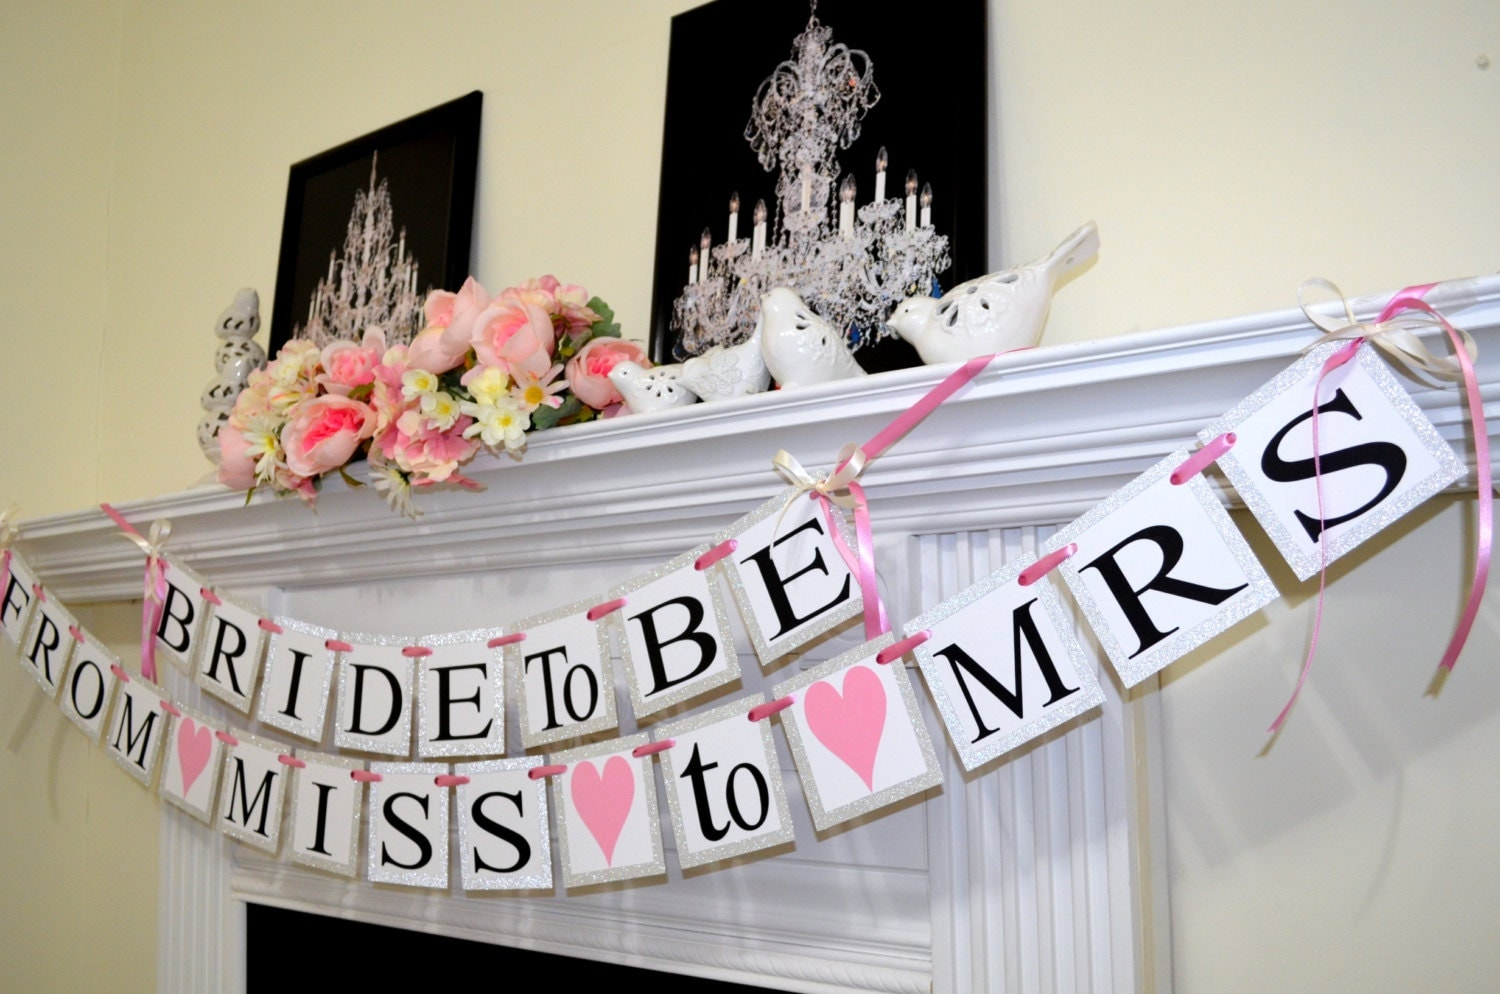 Bride to be from miss to mrs wedding banners bridal shower for Bachelorette party decoration